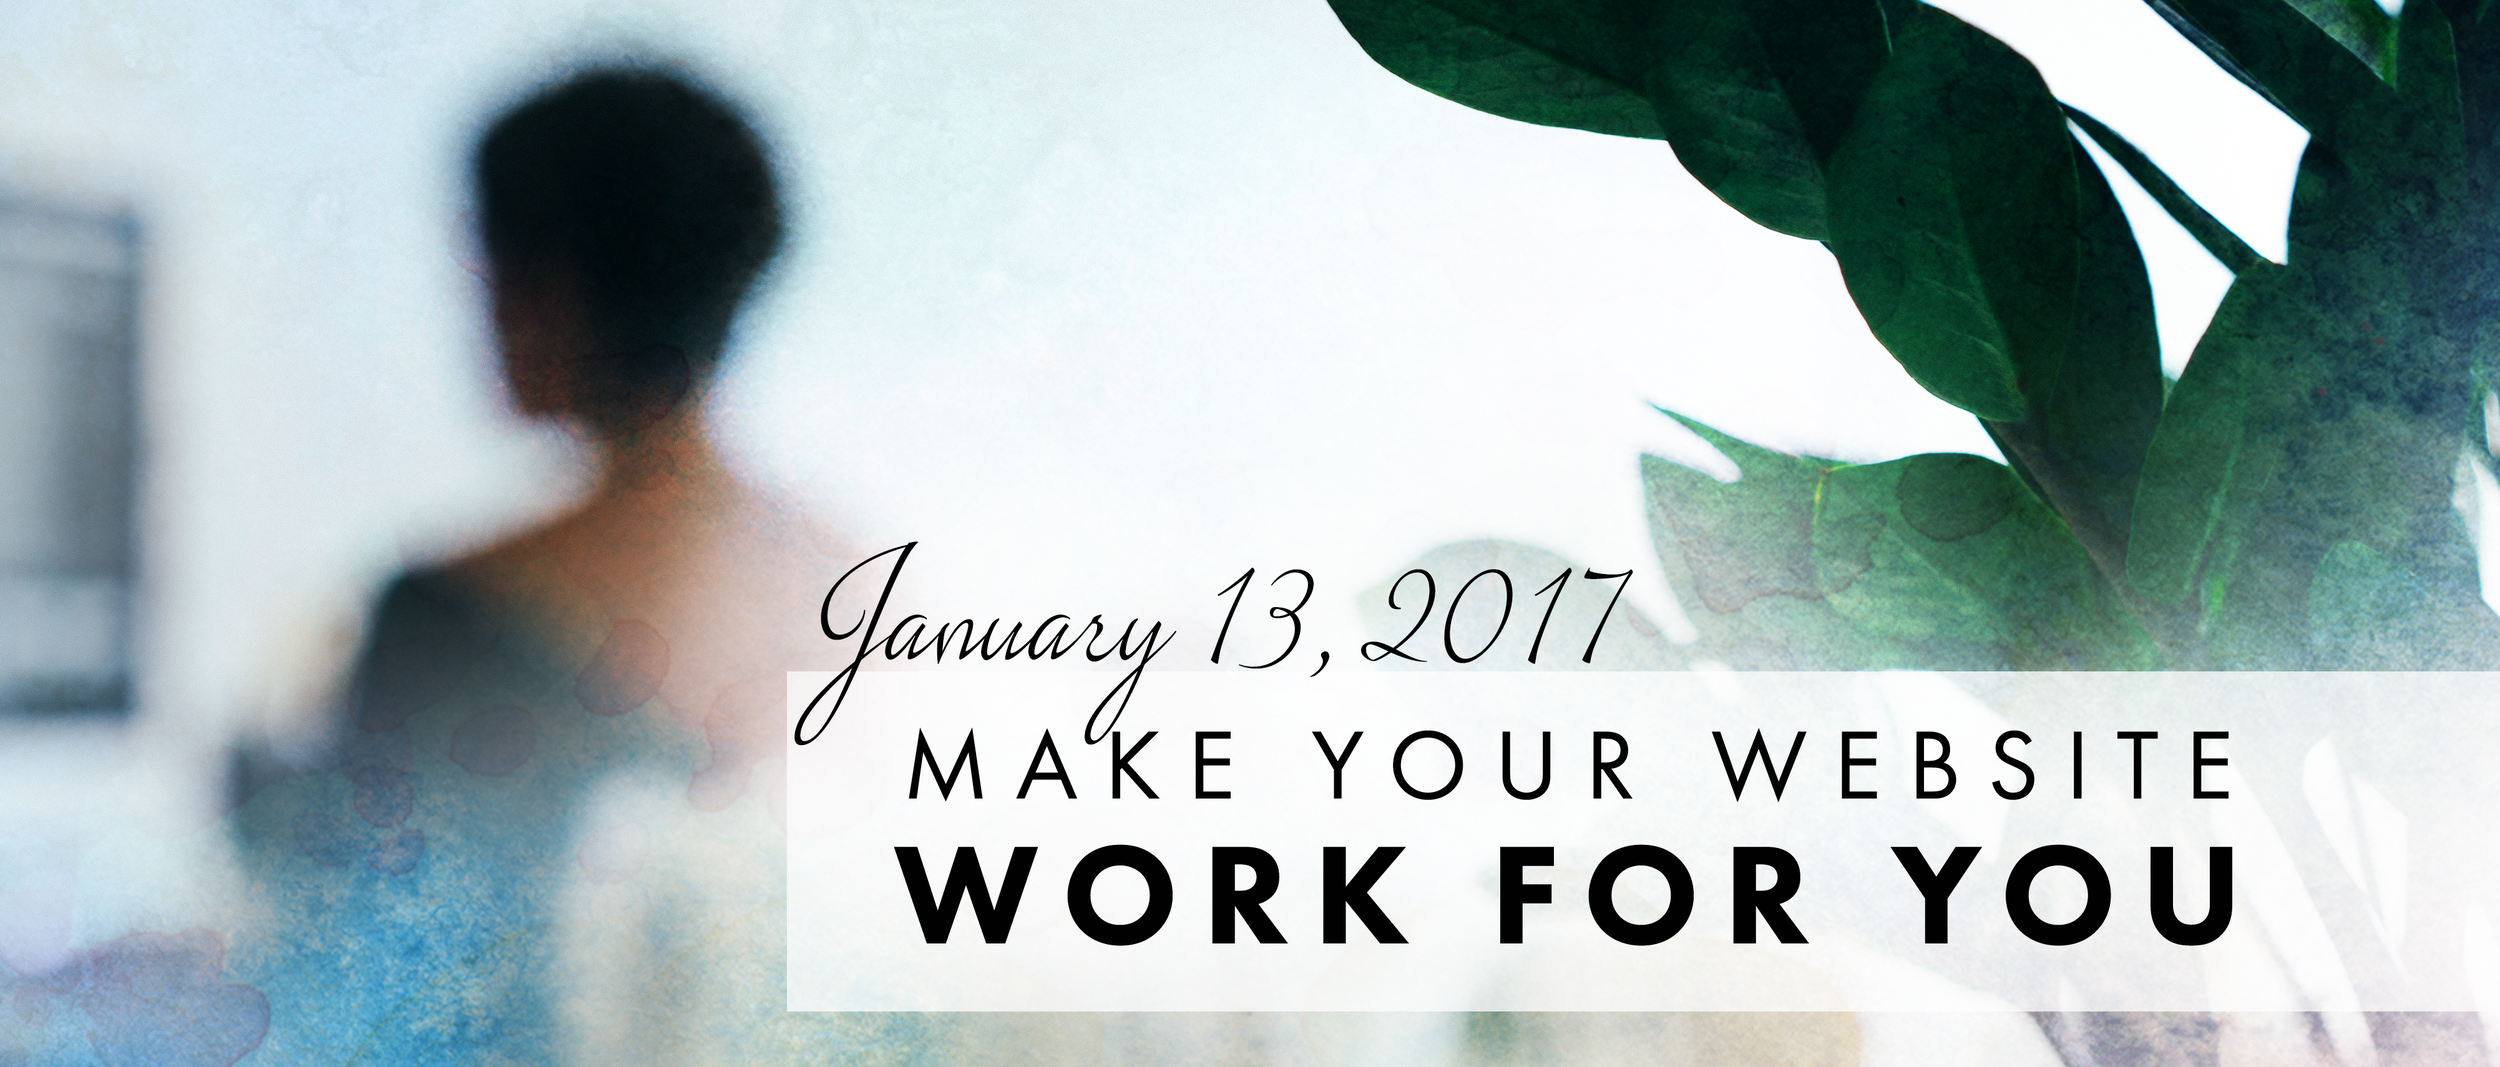 Make Your Website Work For You 2017